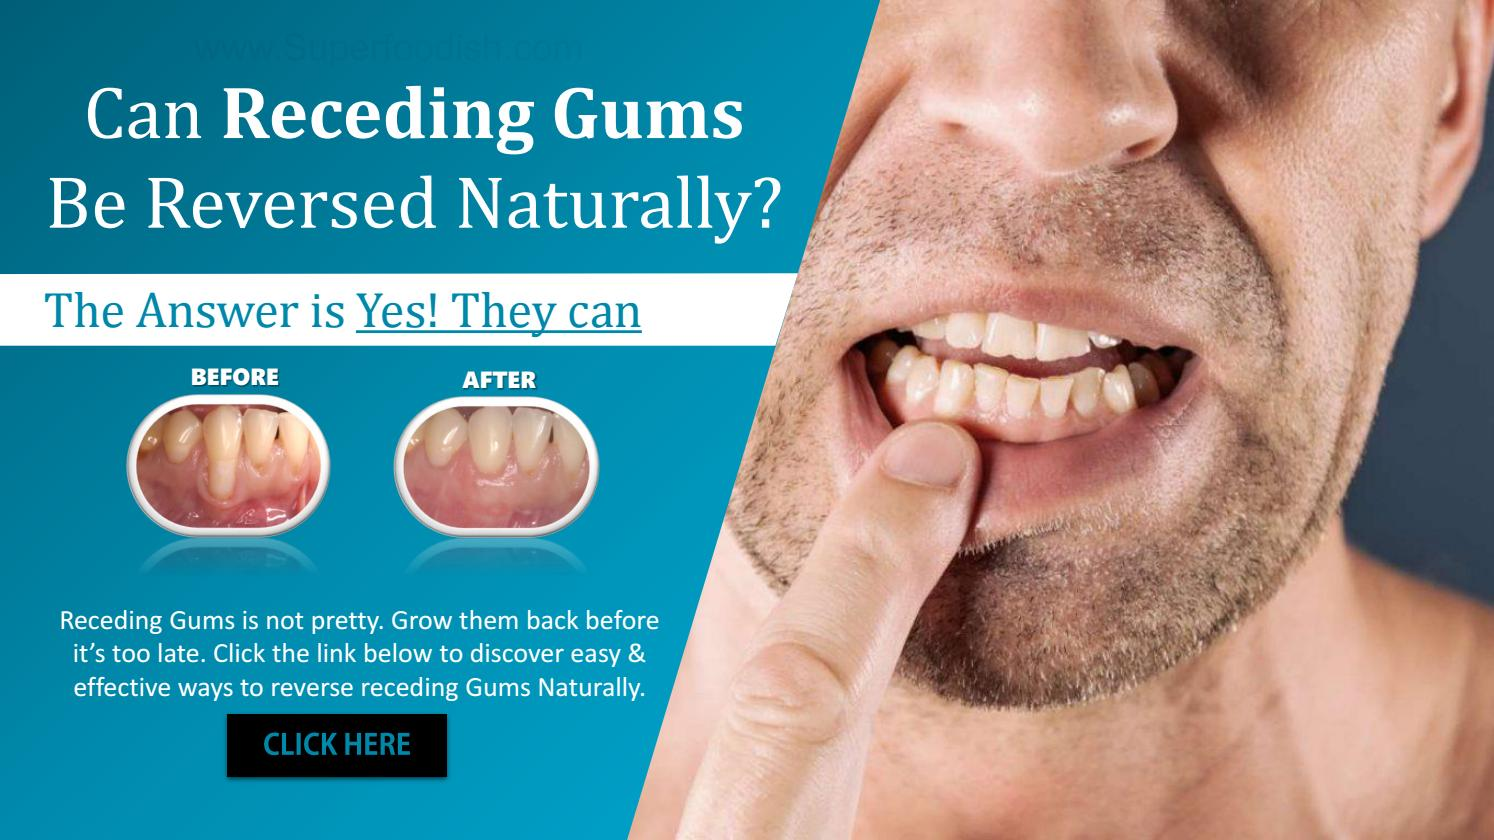 Can Gums Be Reversed Naturally